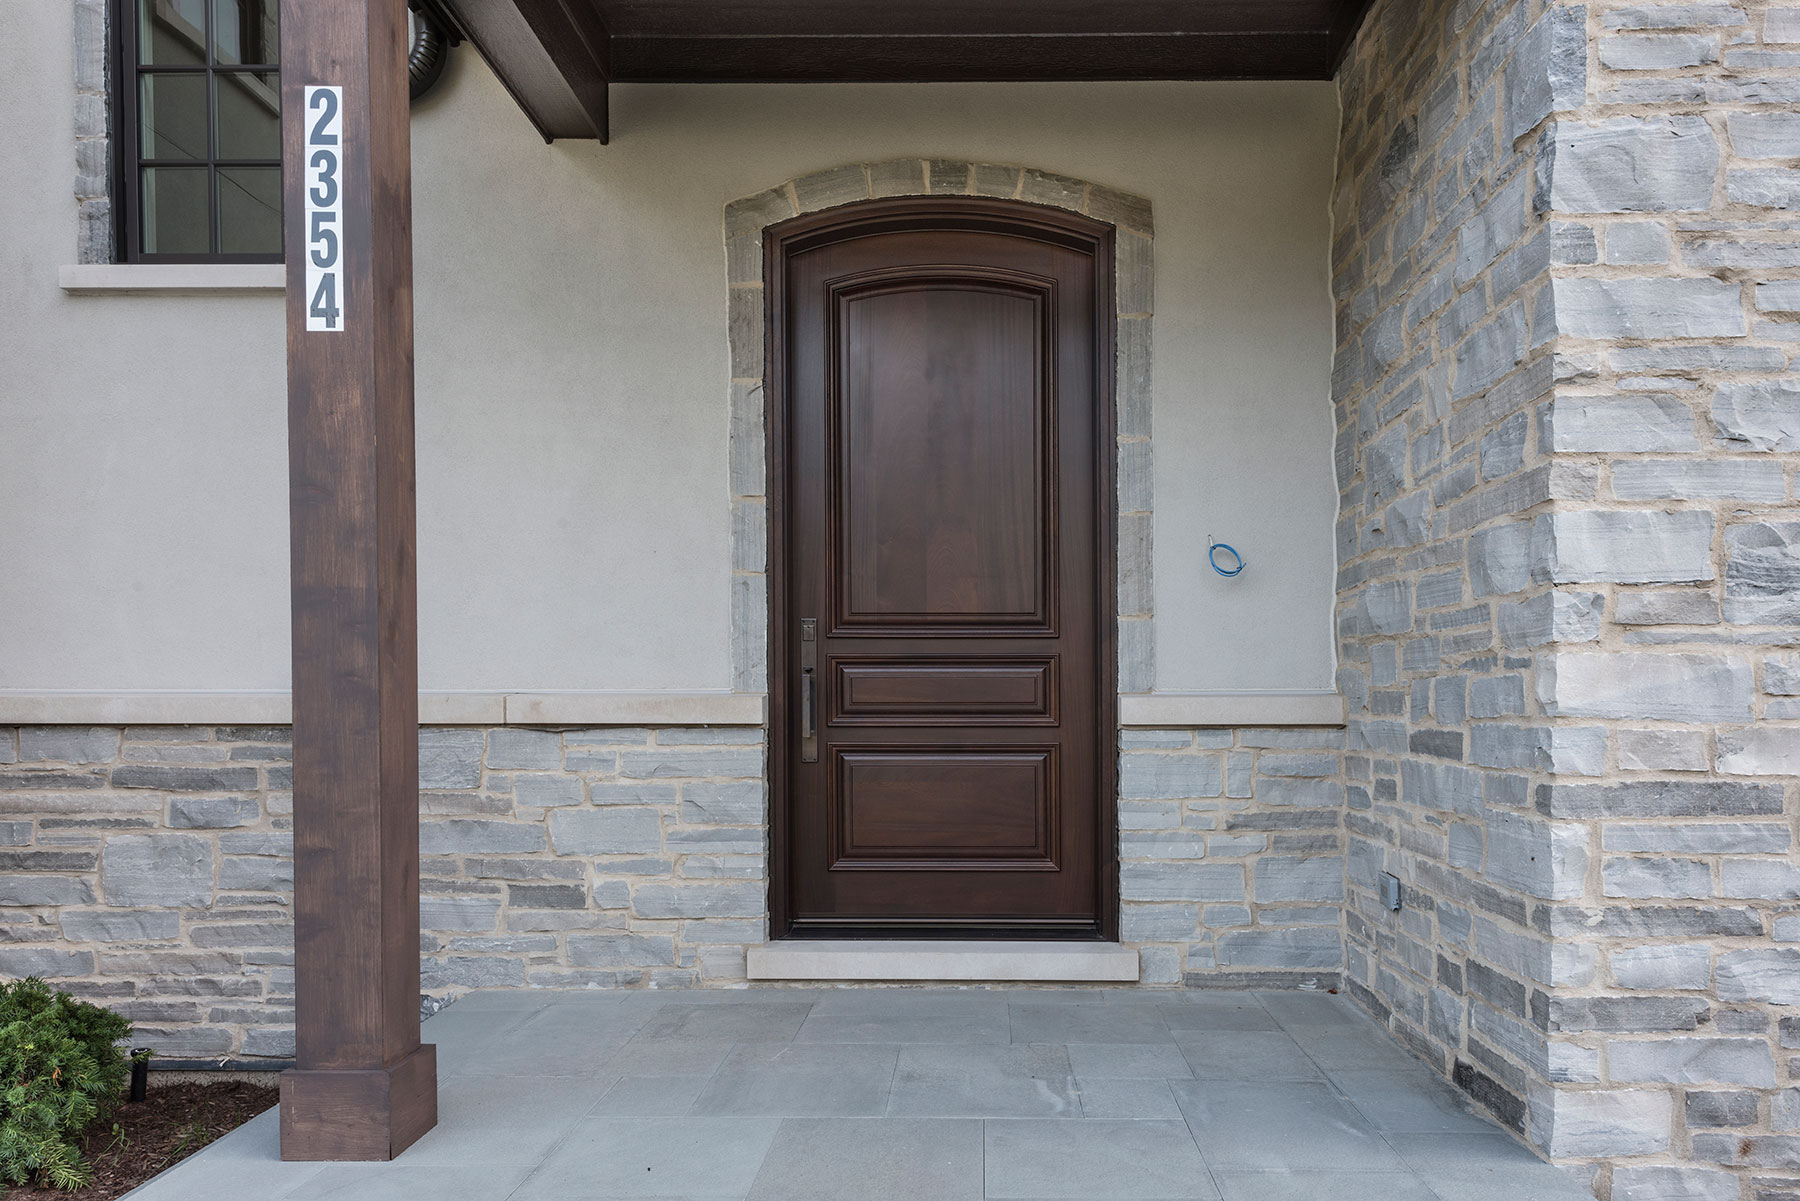 Custom Wood Front Entry Doors | solid wood front entry door, walnut stain, for luxury home  - Glenview Doors - Custom Doors in Chicago